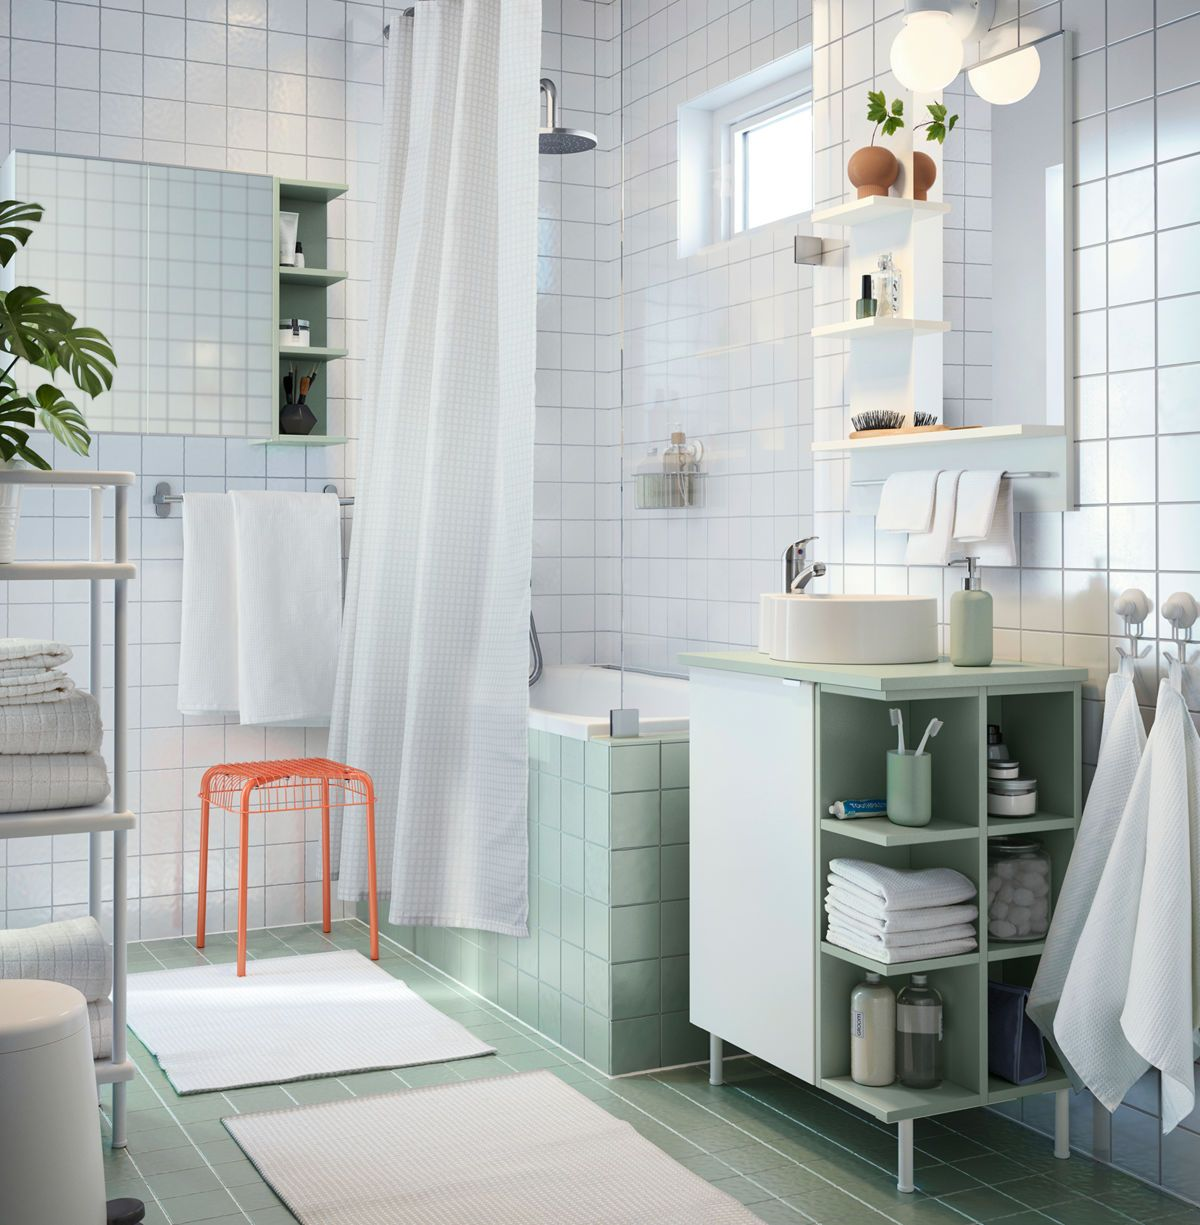 IKEA Bathroom Brochure 2018 Open shelve for basin storage | Home ...